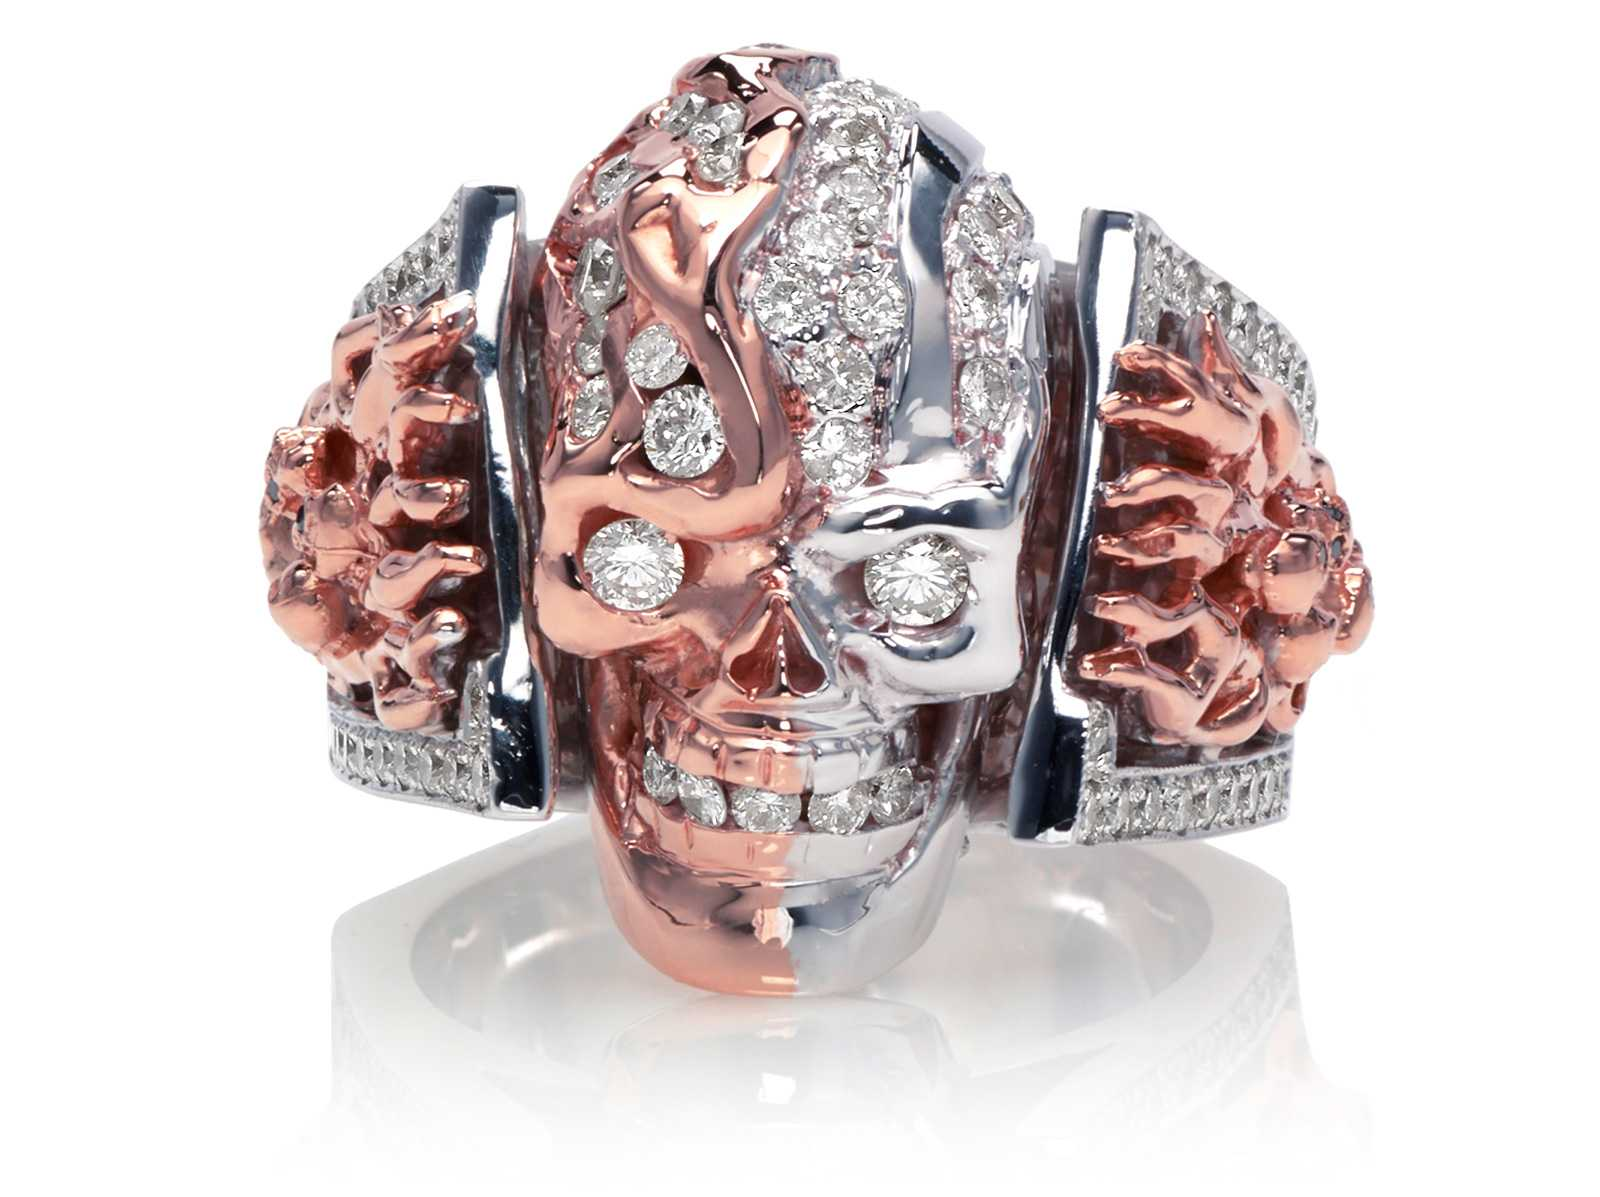 RG5000-B Two Face skull ring (Front View) in Rose and White Gold with White and Black Diamonds, designed by Steve Soffa